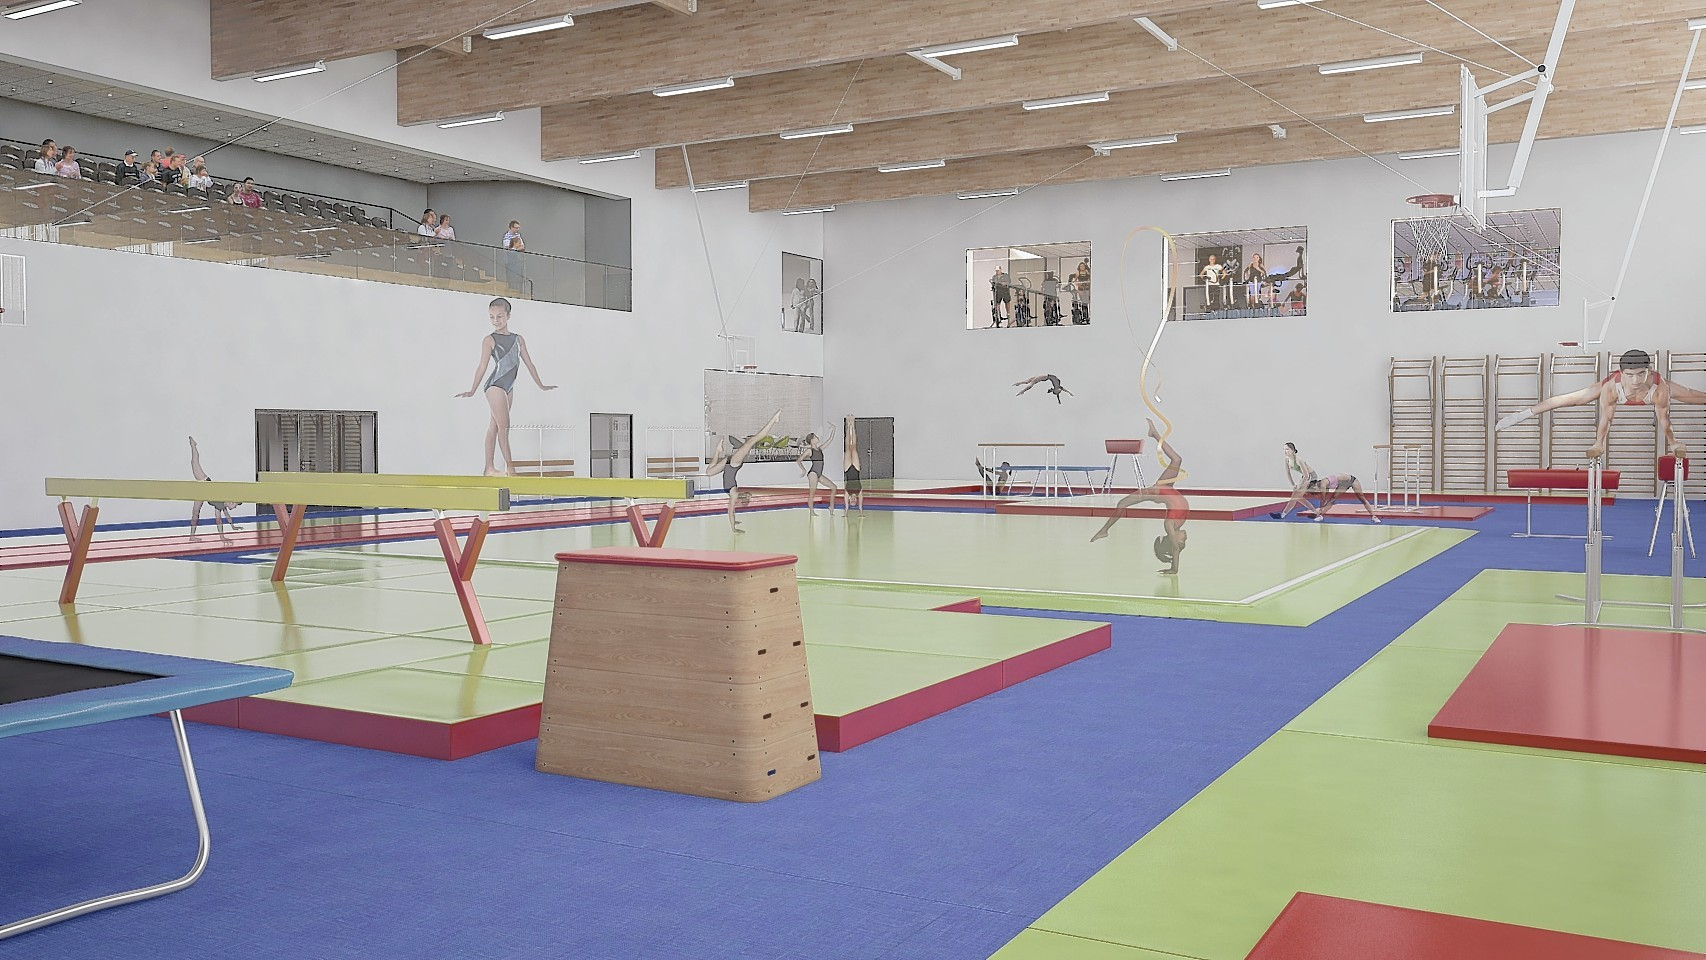 Modern facilities inside the Garioch Sports and Community Centre